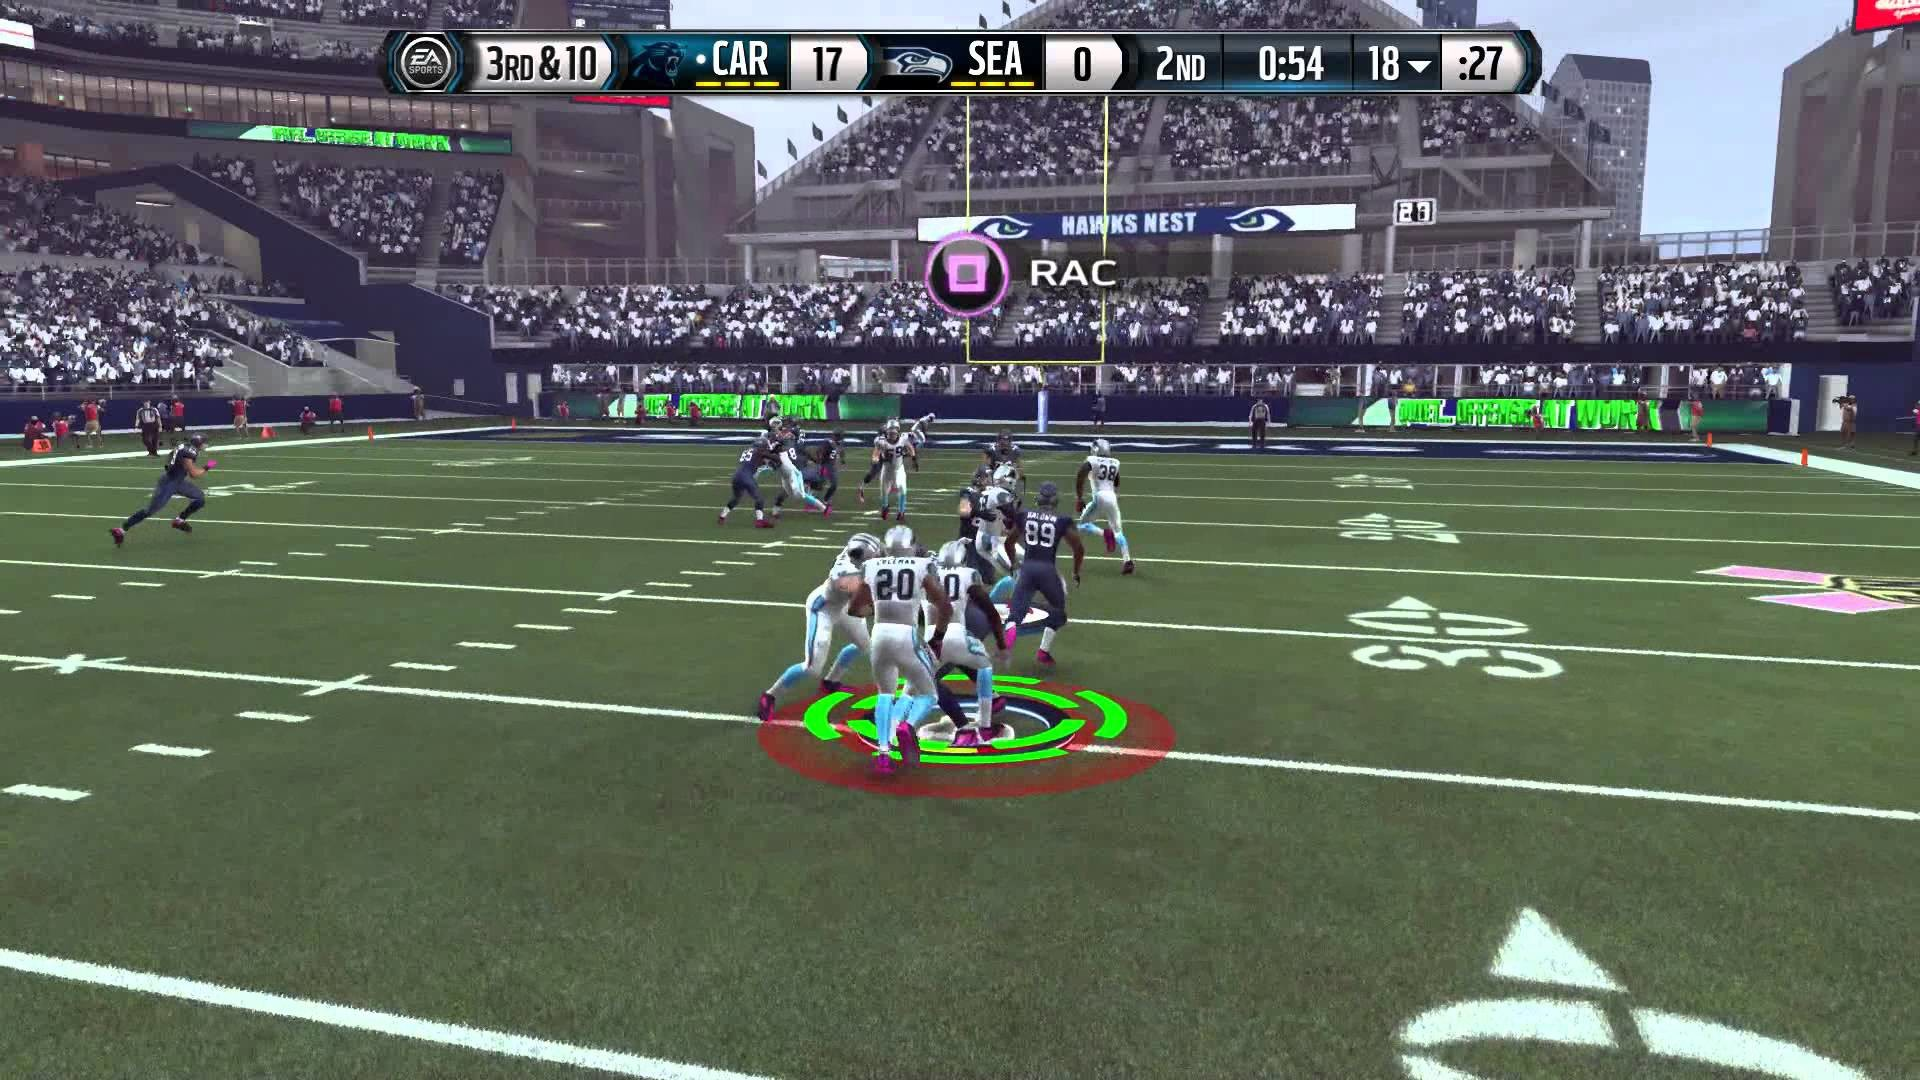 Madden 16 Jerry Rice Seahawks Career Mode Ep 7 vs Panthers